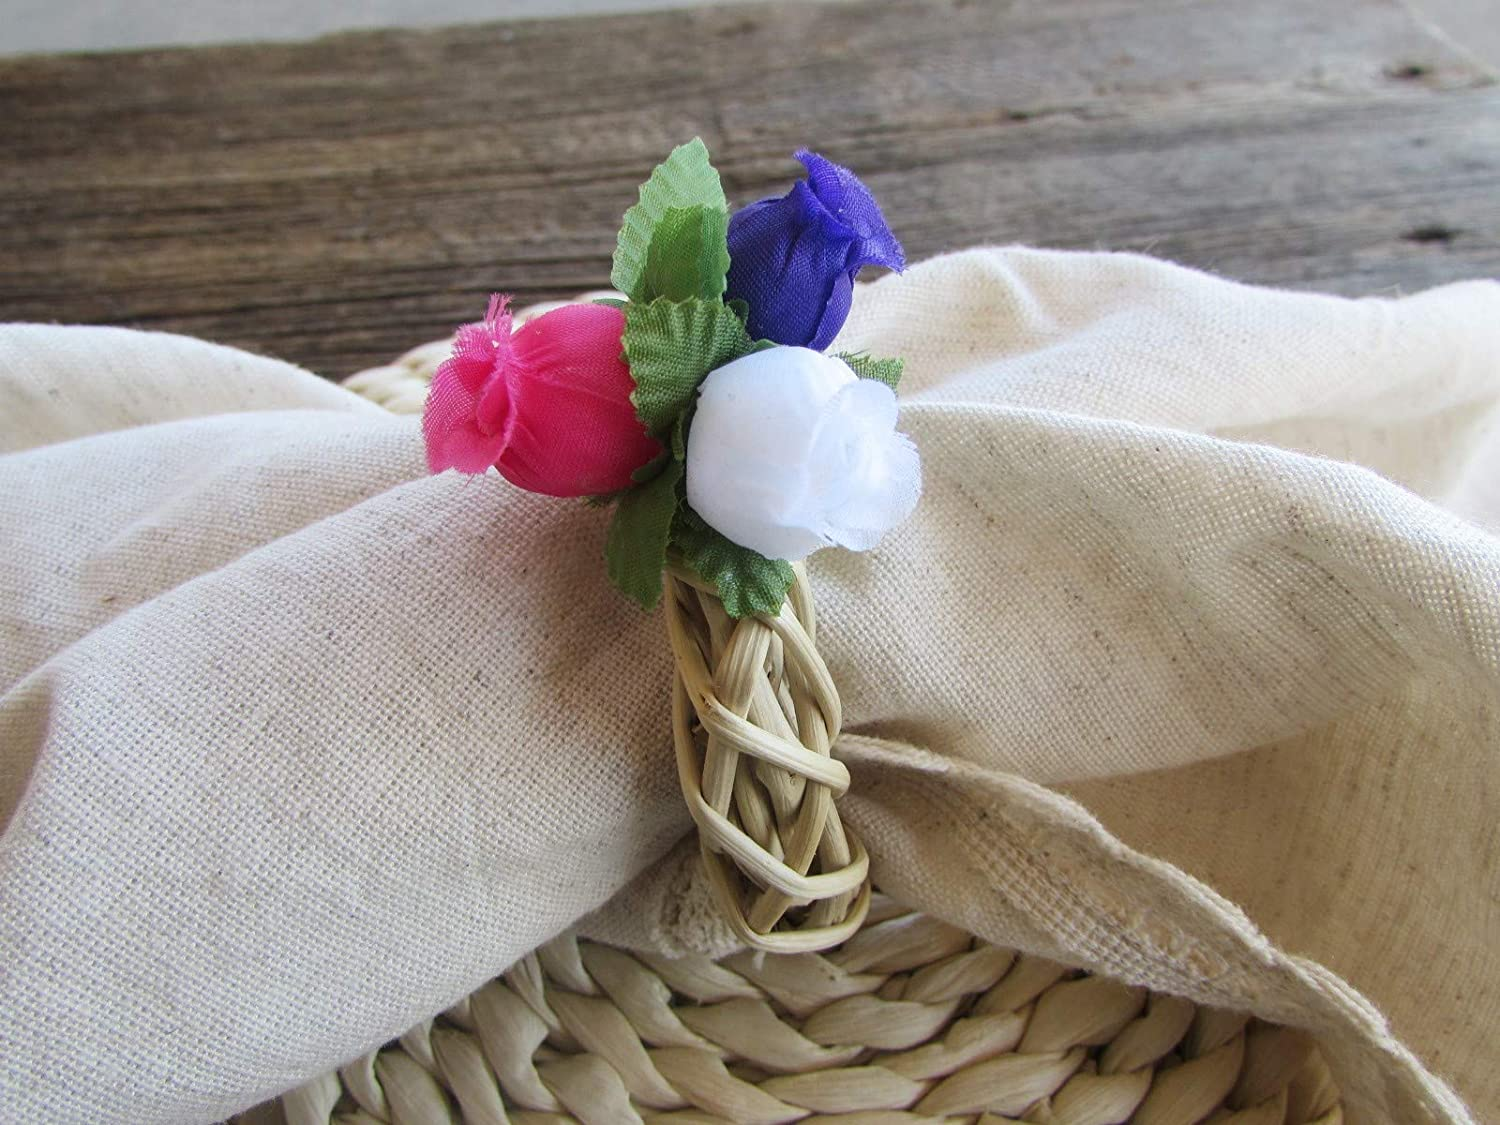 Spring Flower Wreath Pink /& Mint Green Rose Napkin Ring Holders Set of 4, 6, 8, 10, 12, 16 Rustic Kitchen Table Decor